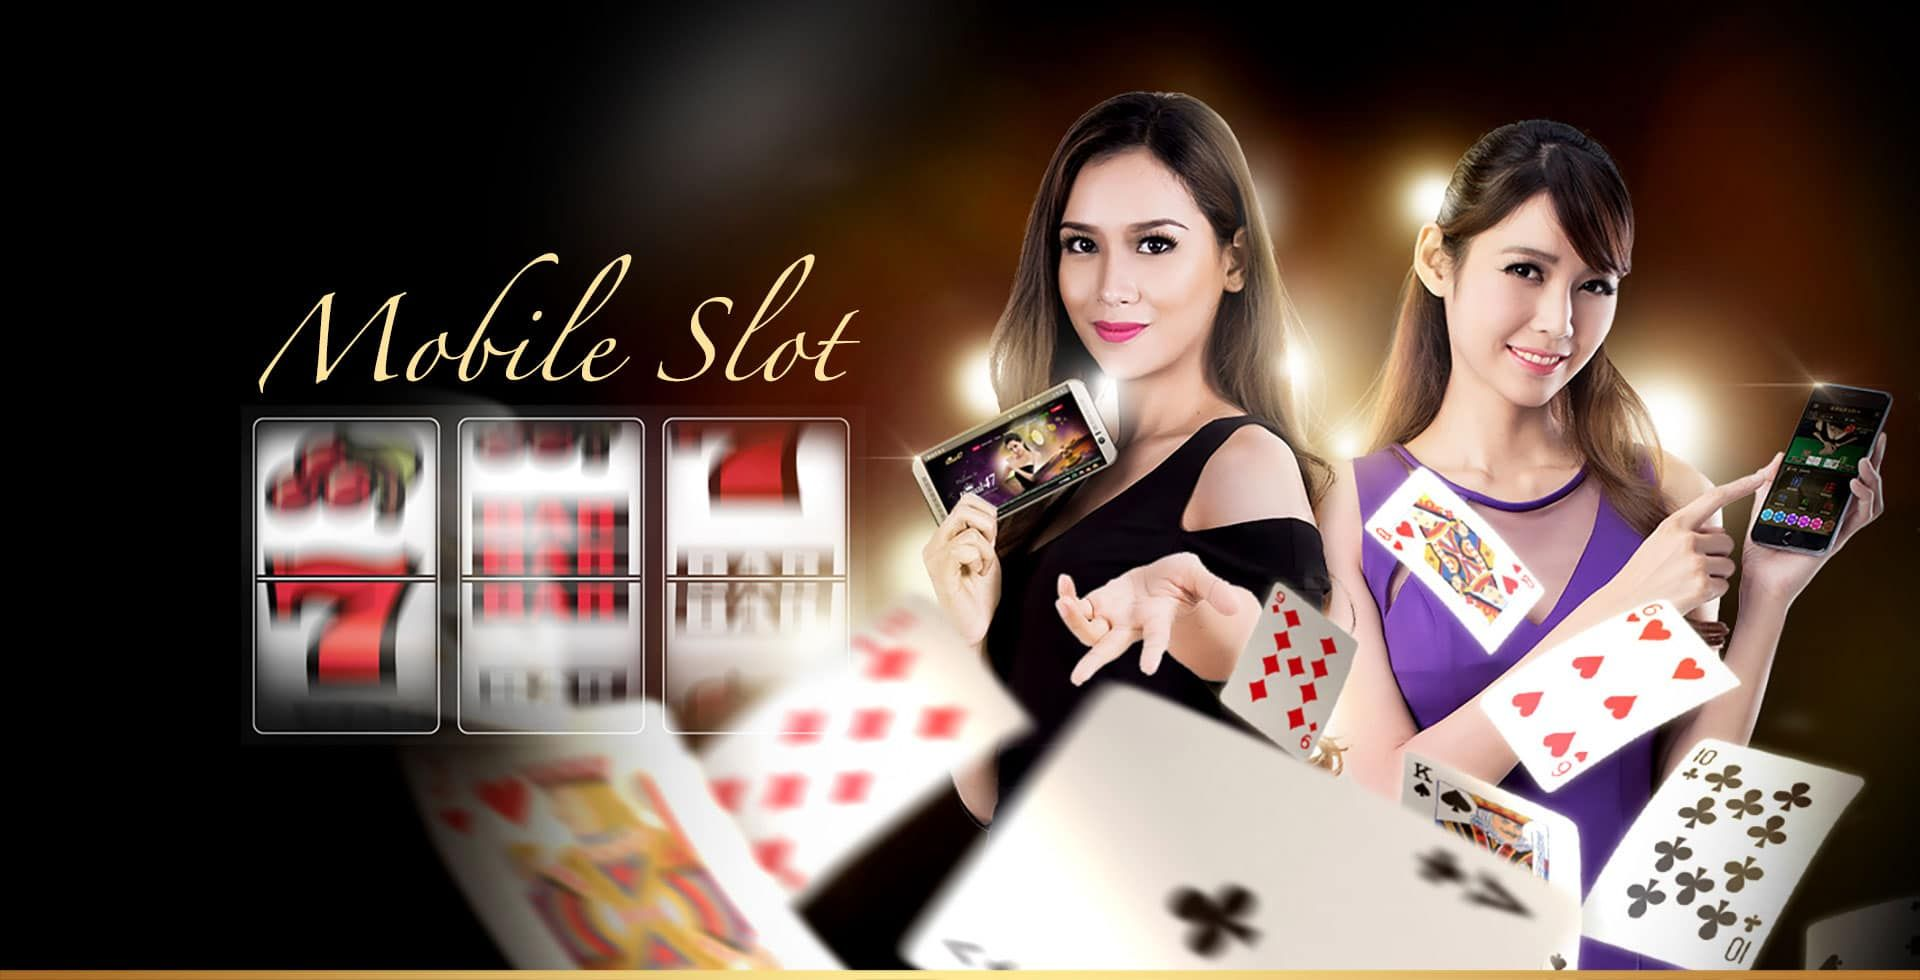 Play Online Slots Game Malaysia Without Pressure Afbcash Online Casino Slots Slots Games Casino Bet